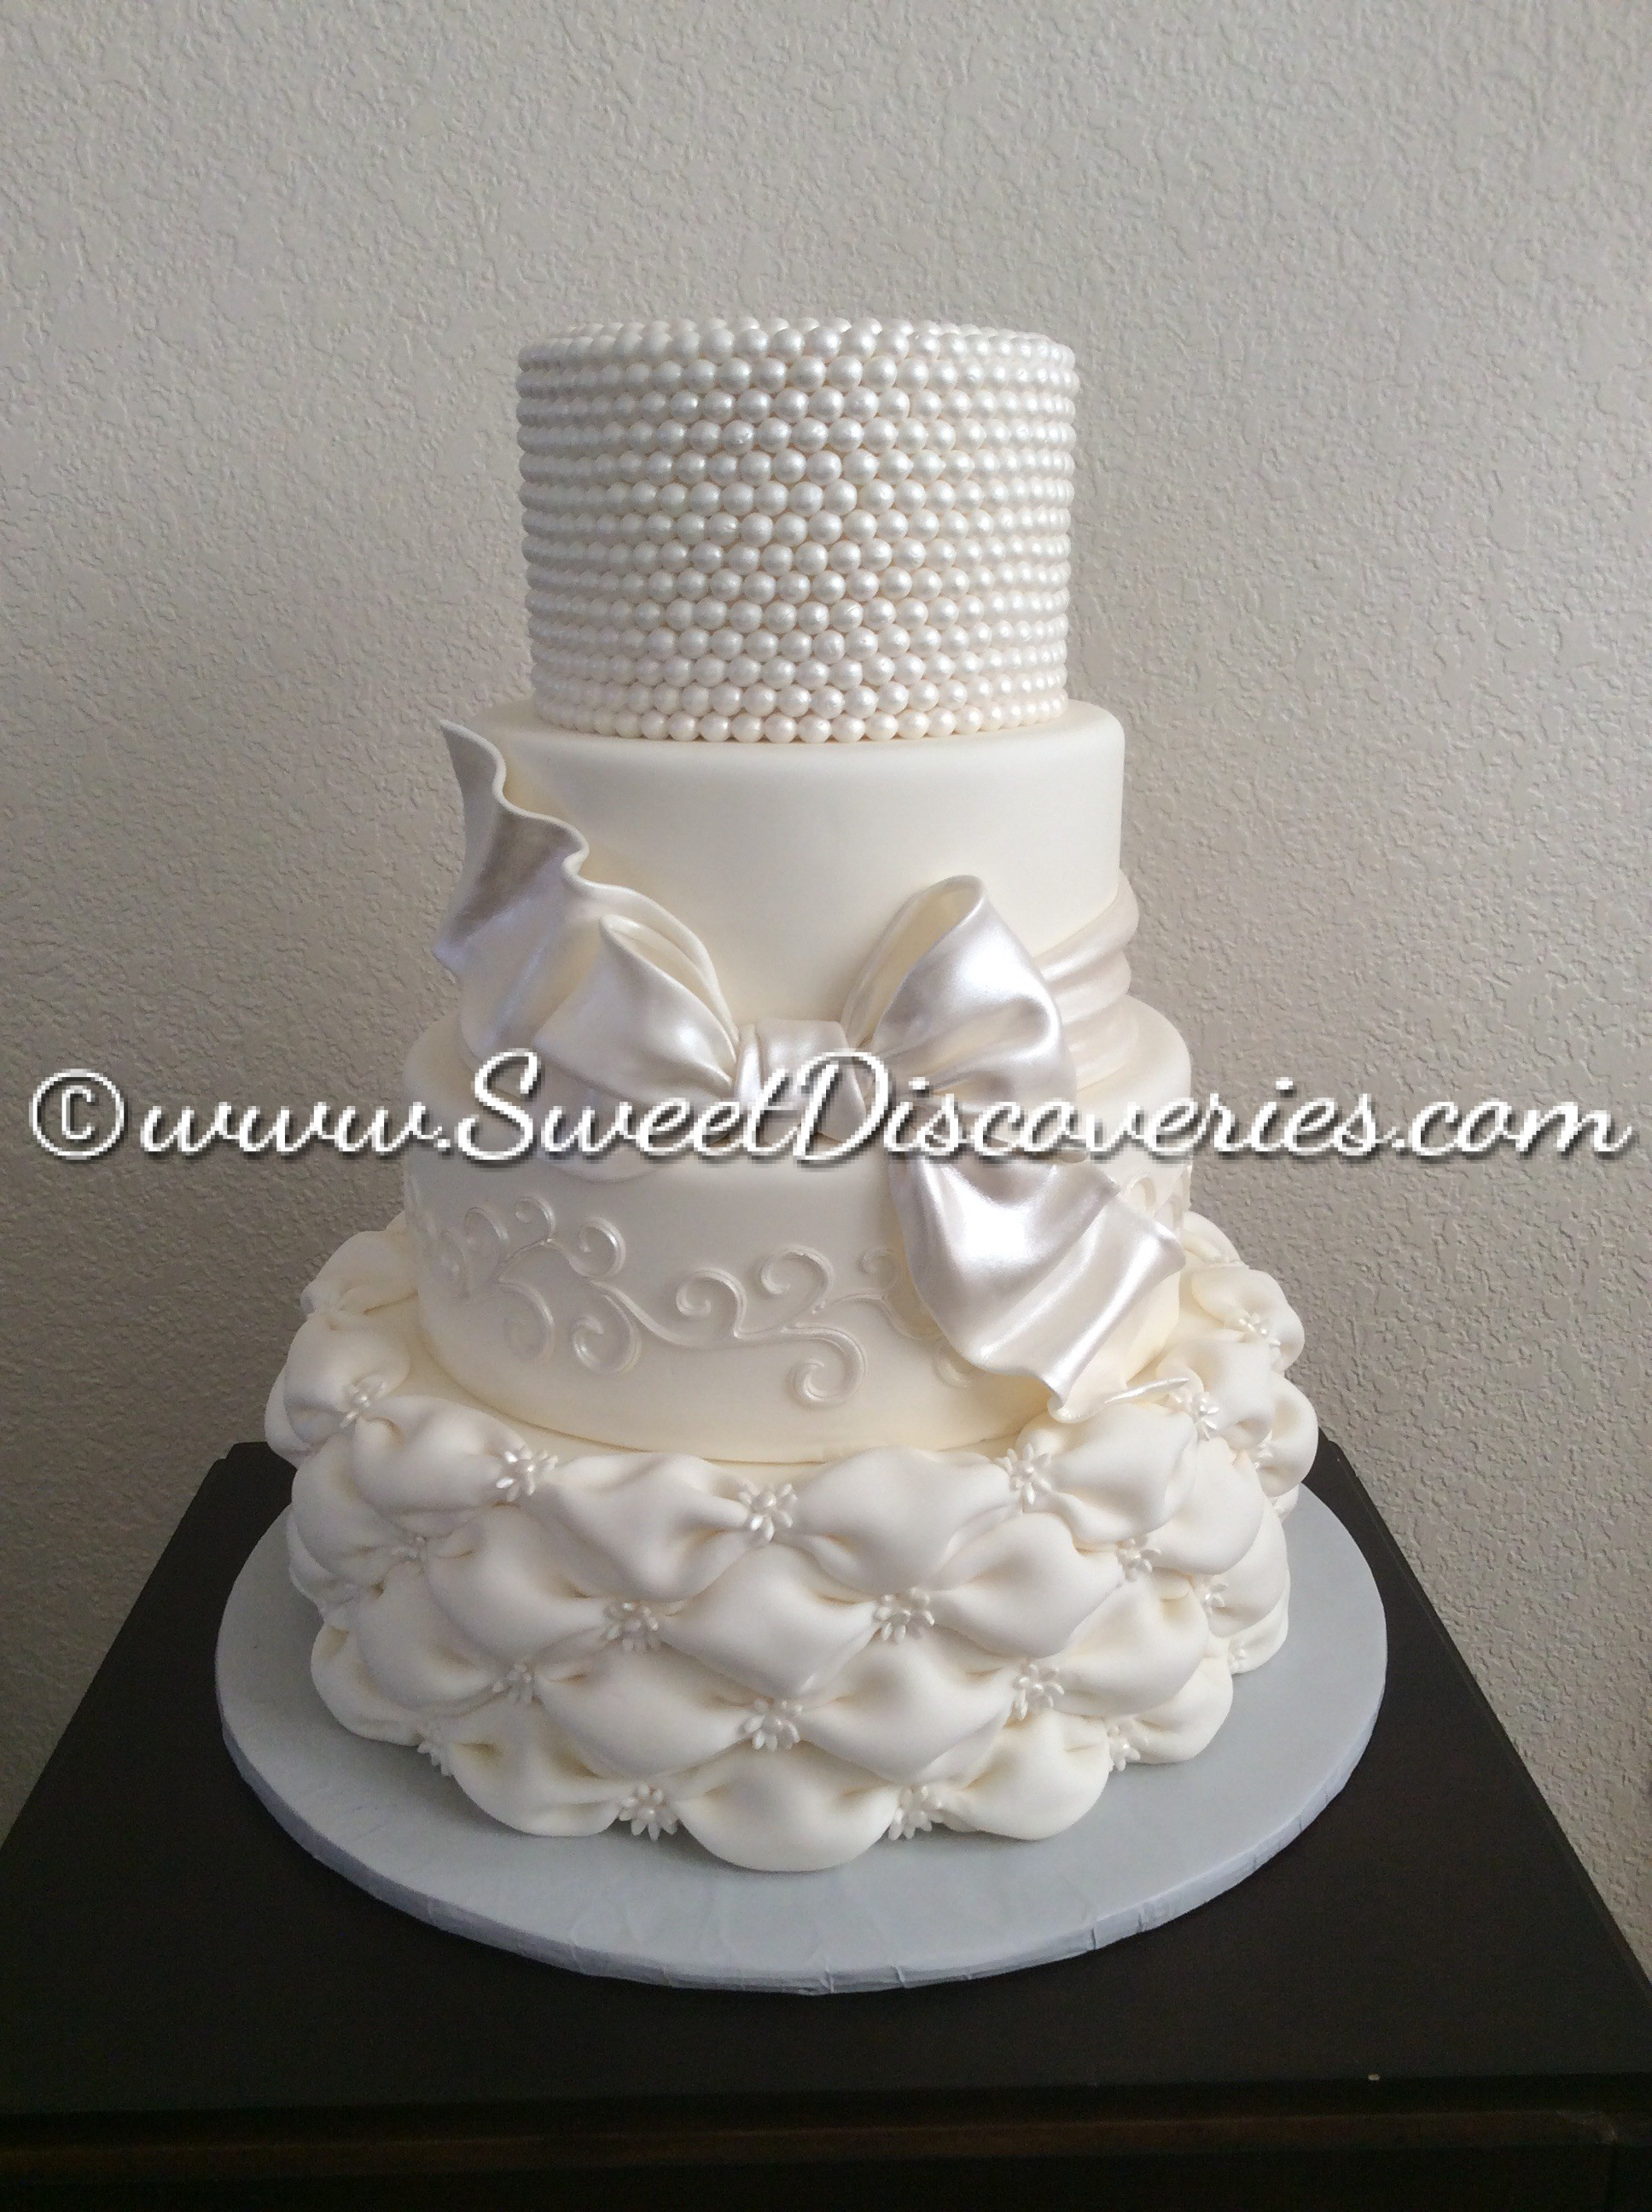 Pillowed Wedding Cake Sweet Discoveries